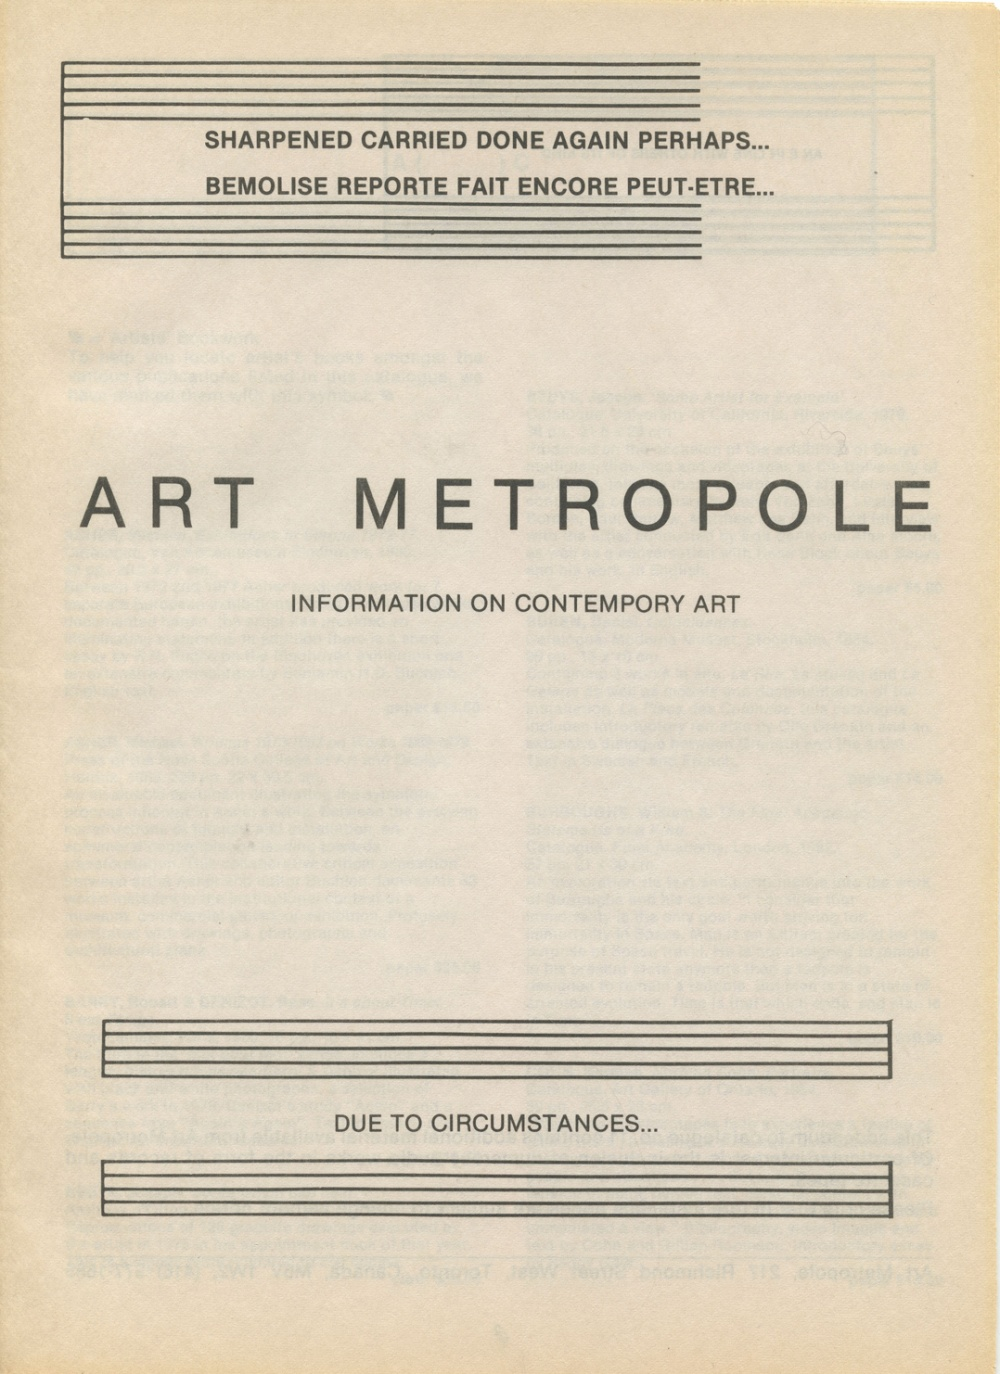 Art Metropole. Information on Contemporary Art. Catalogue No. 11